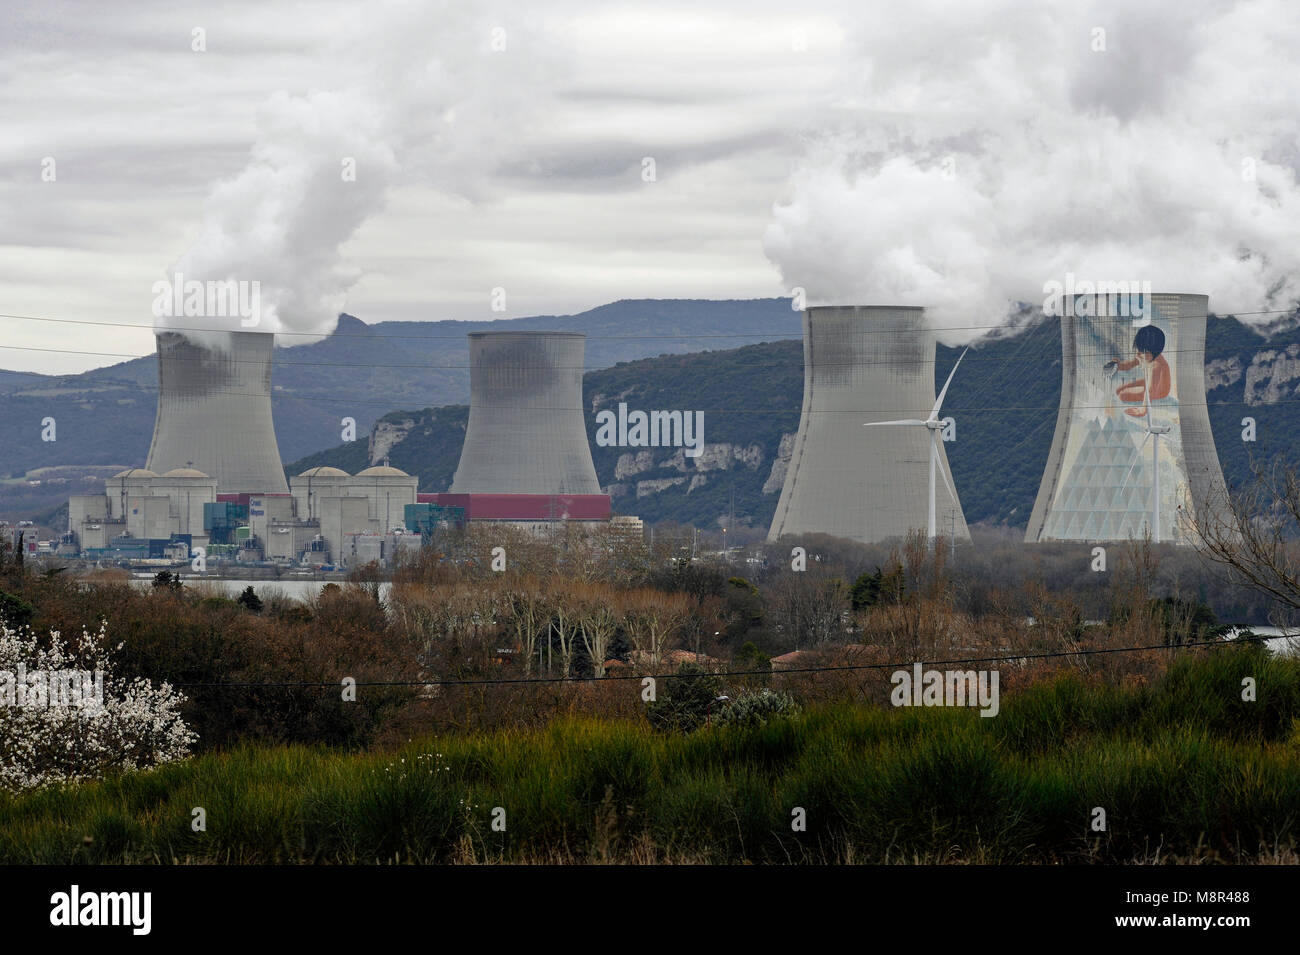 NUCLEAR POWER PLANT OF CRUAS-MEYSSE ON THE BANKS OF RIVER RHÔNE - ARDECHE FRANCE - ELECTRIC NUCLEAR POWER PLANT - Stock Image